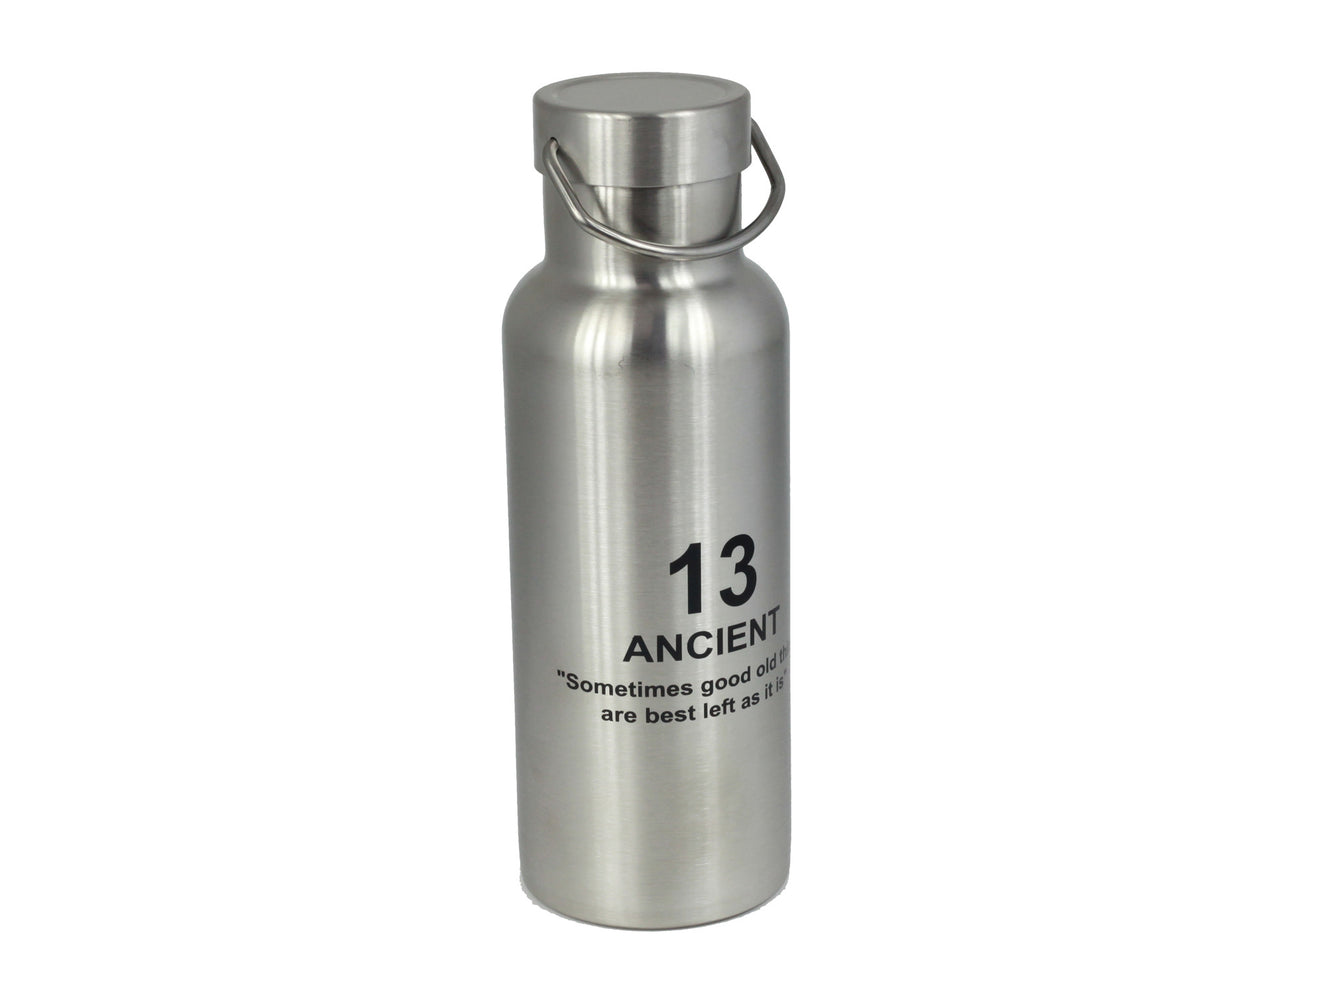 Ancient Stainless Bottle | Silver by Showa - Bento&co Japanese Bento Lunch Boxes and Kitchenware Specialists